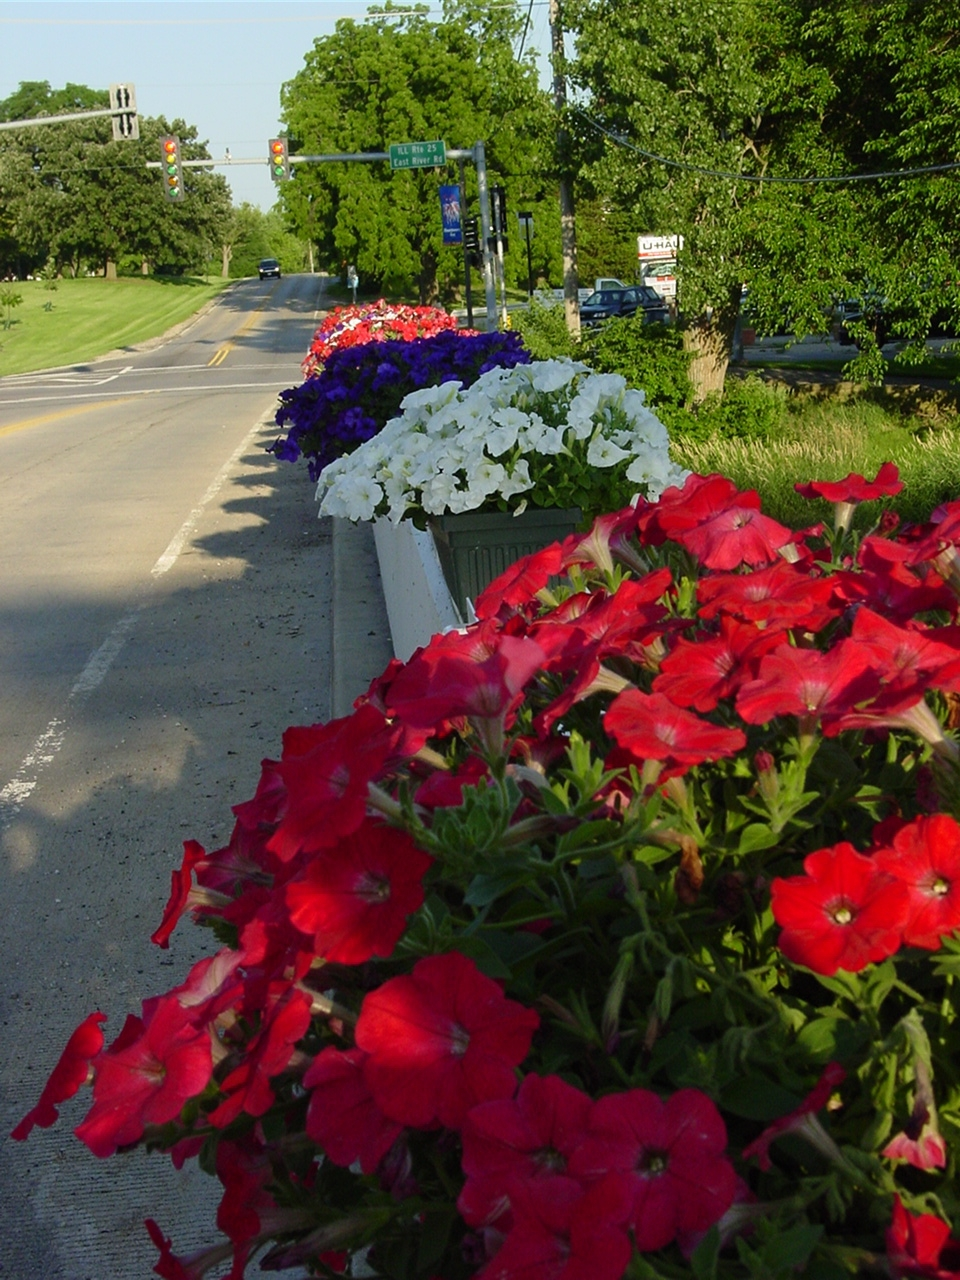 red, white and blue petunias on bridge rail